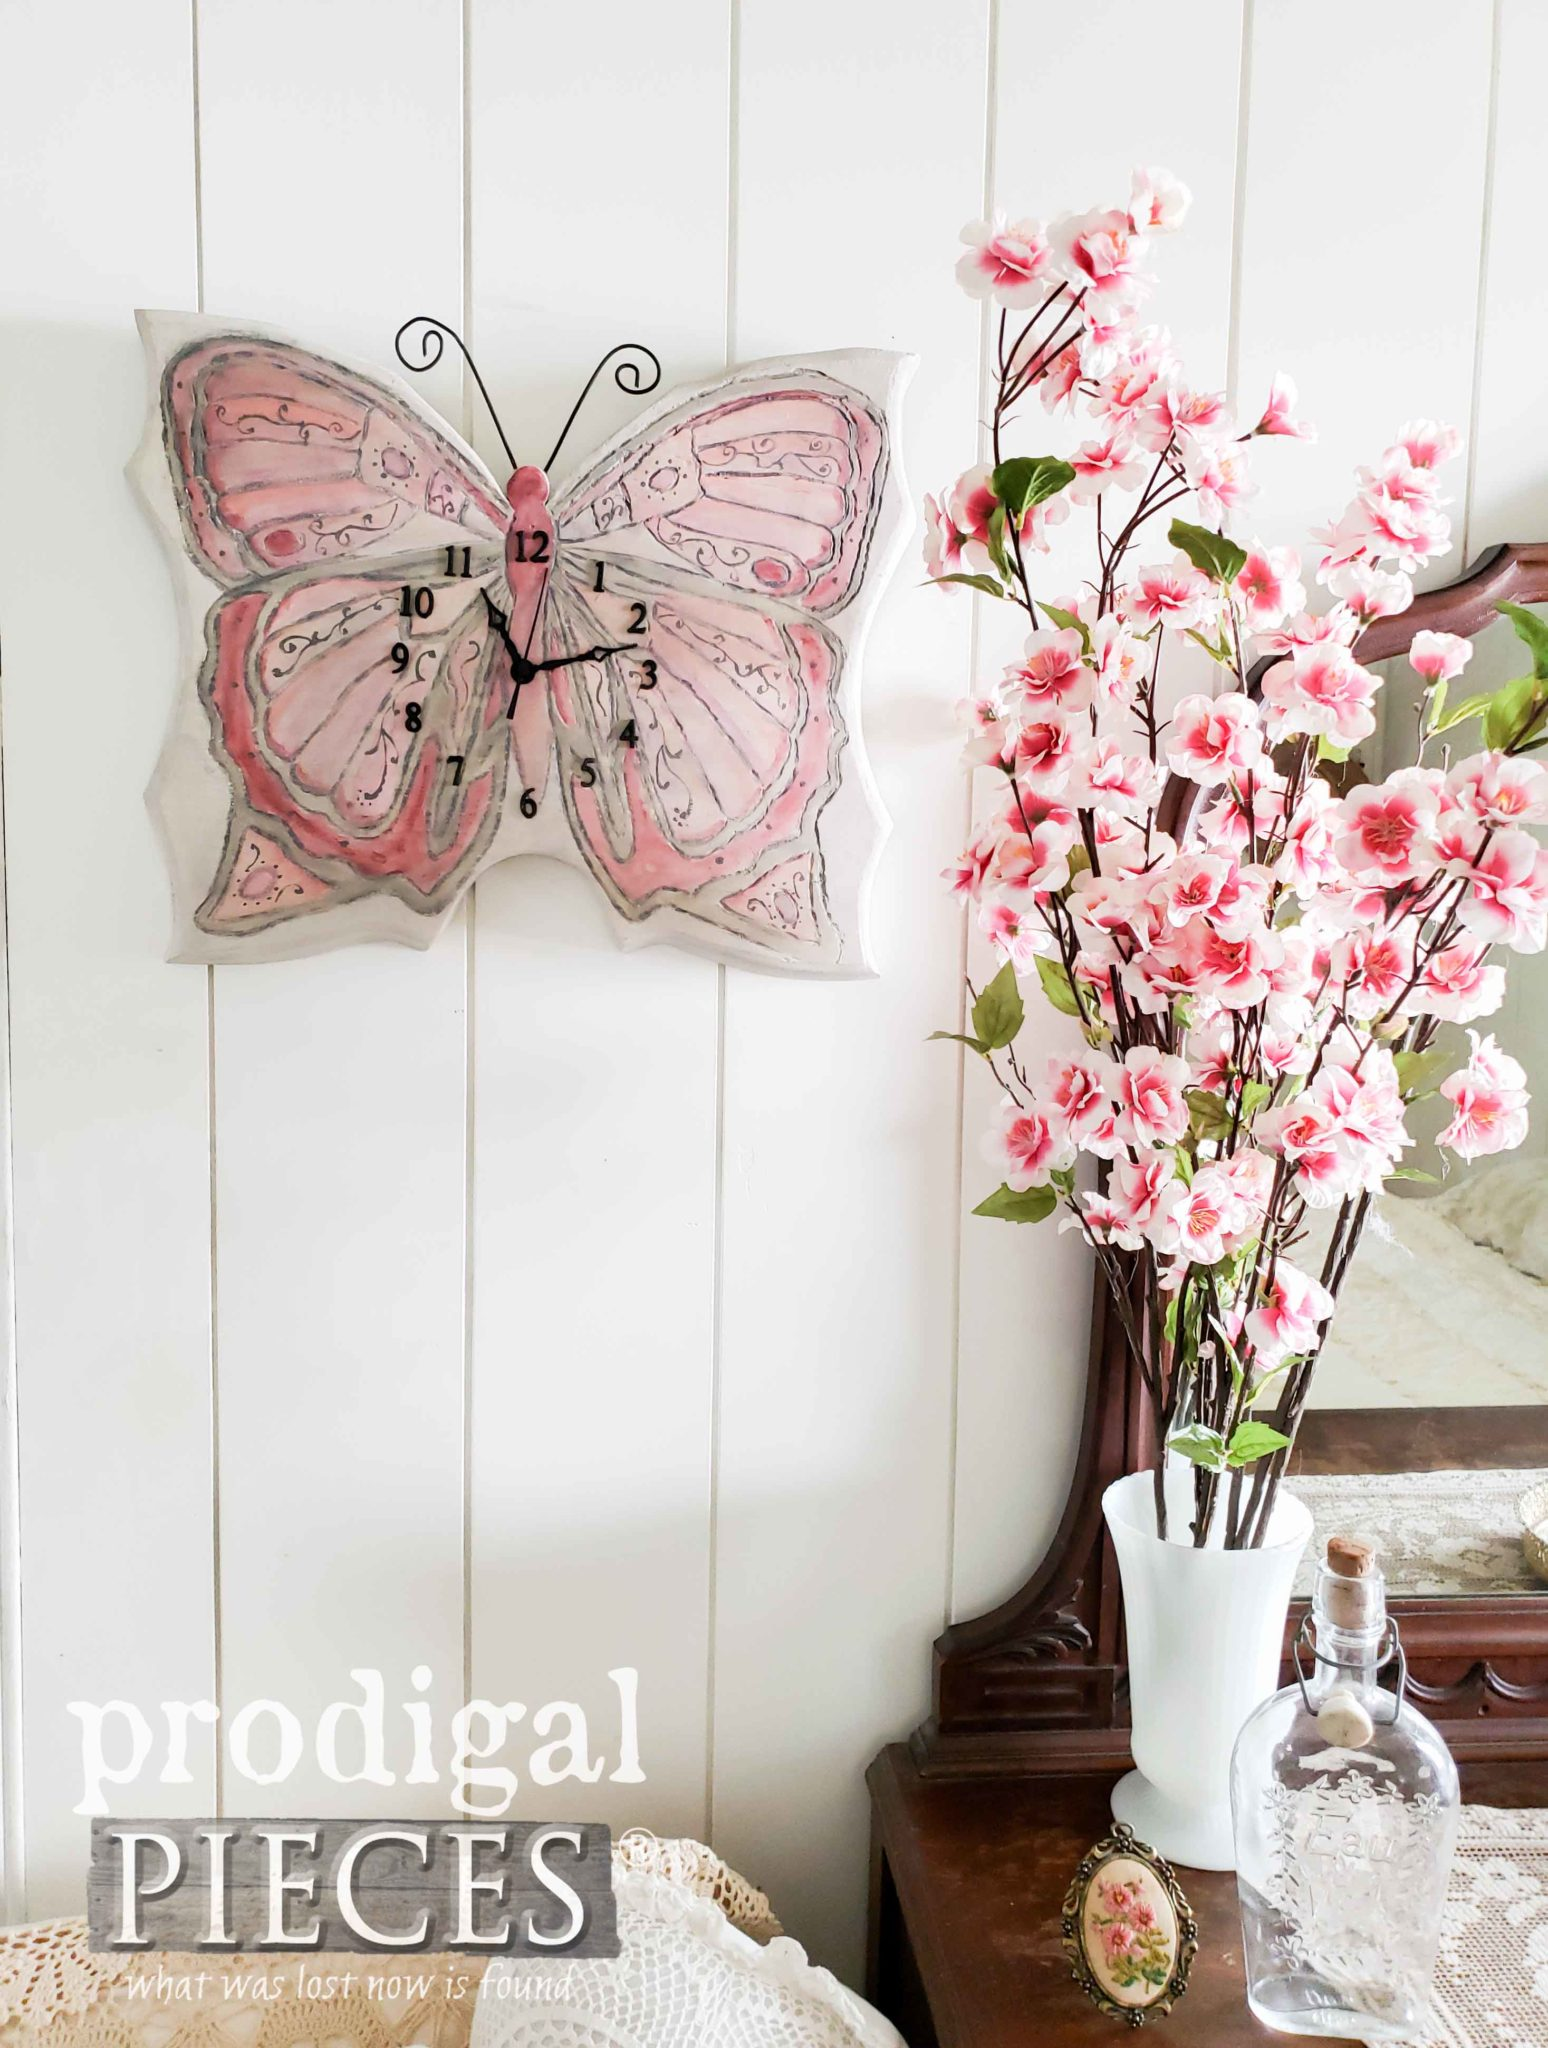 DIY Butterfly Wall Clock Created from an Upcycled Find by Larissa of Prodigal Pieces | prodigalpieces.com